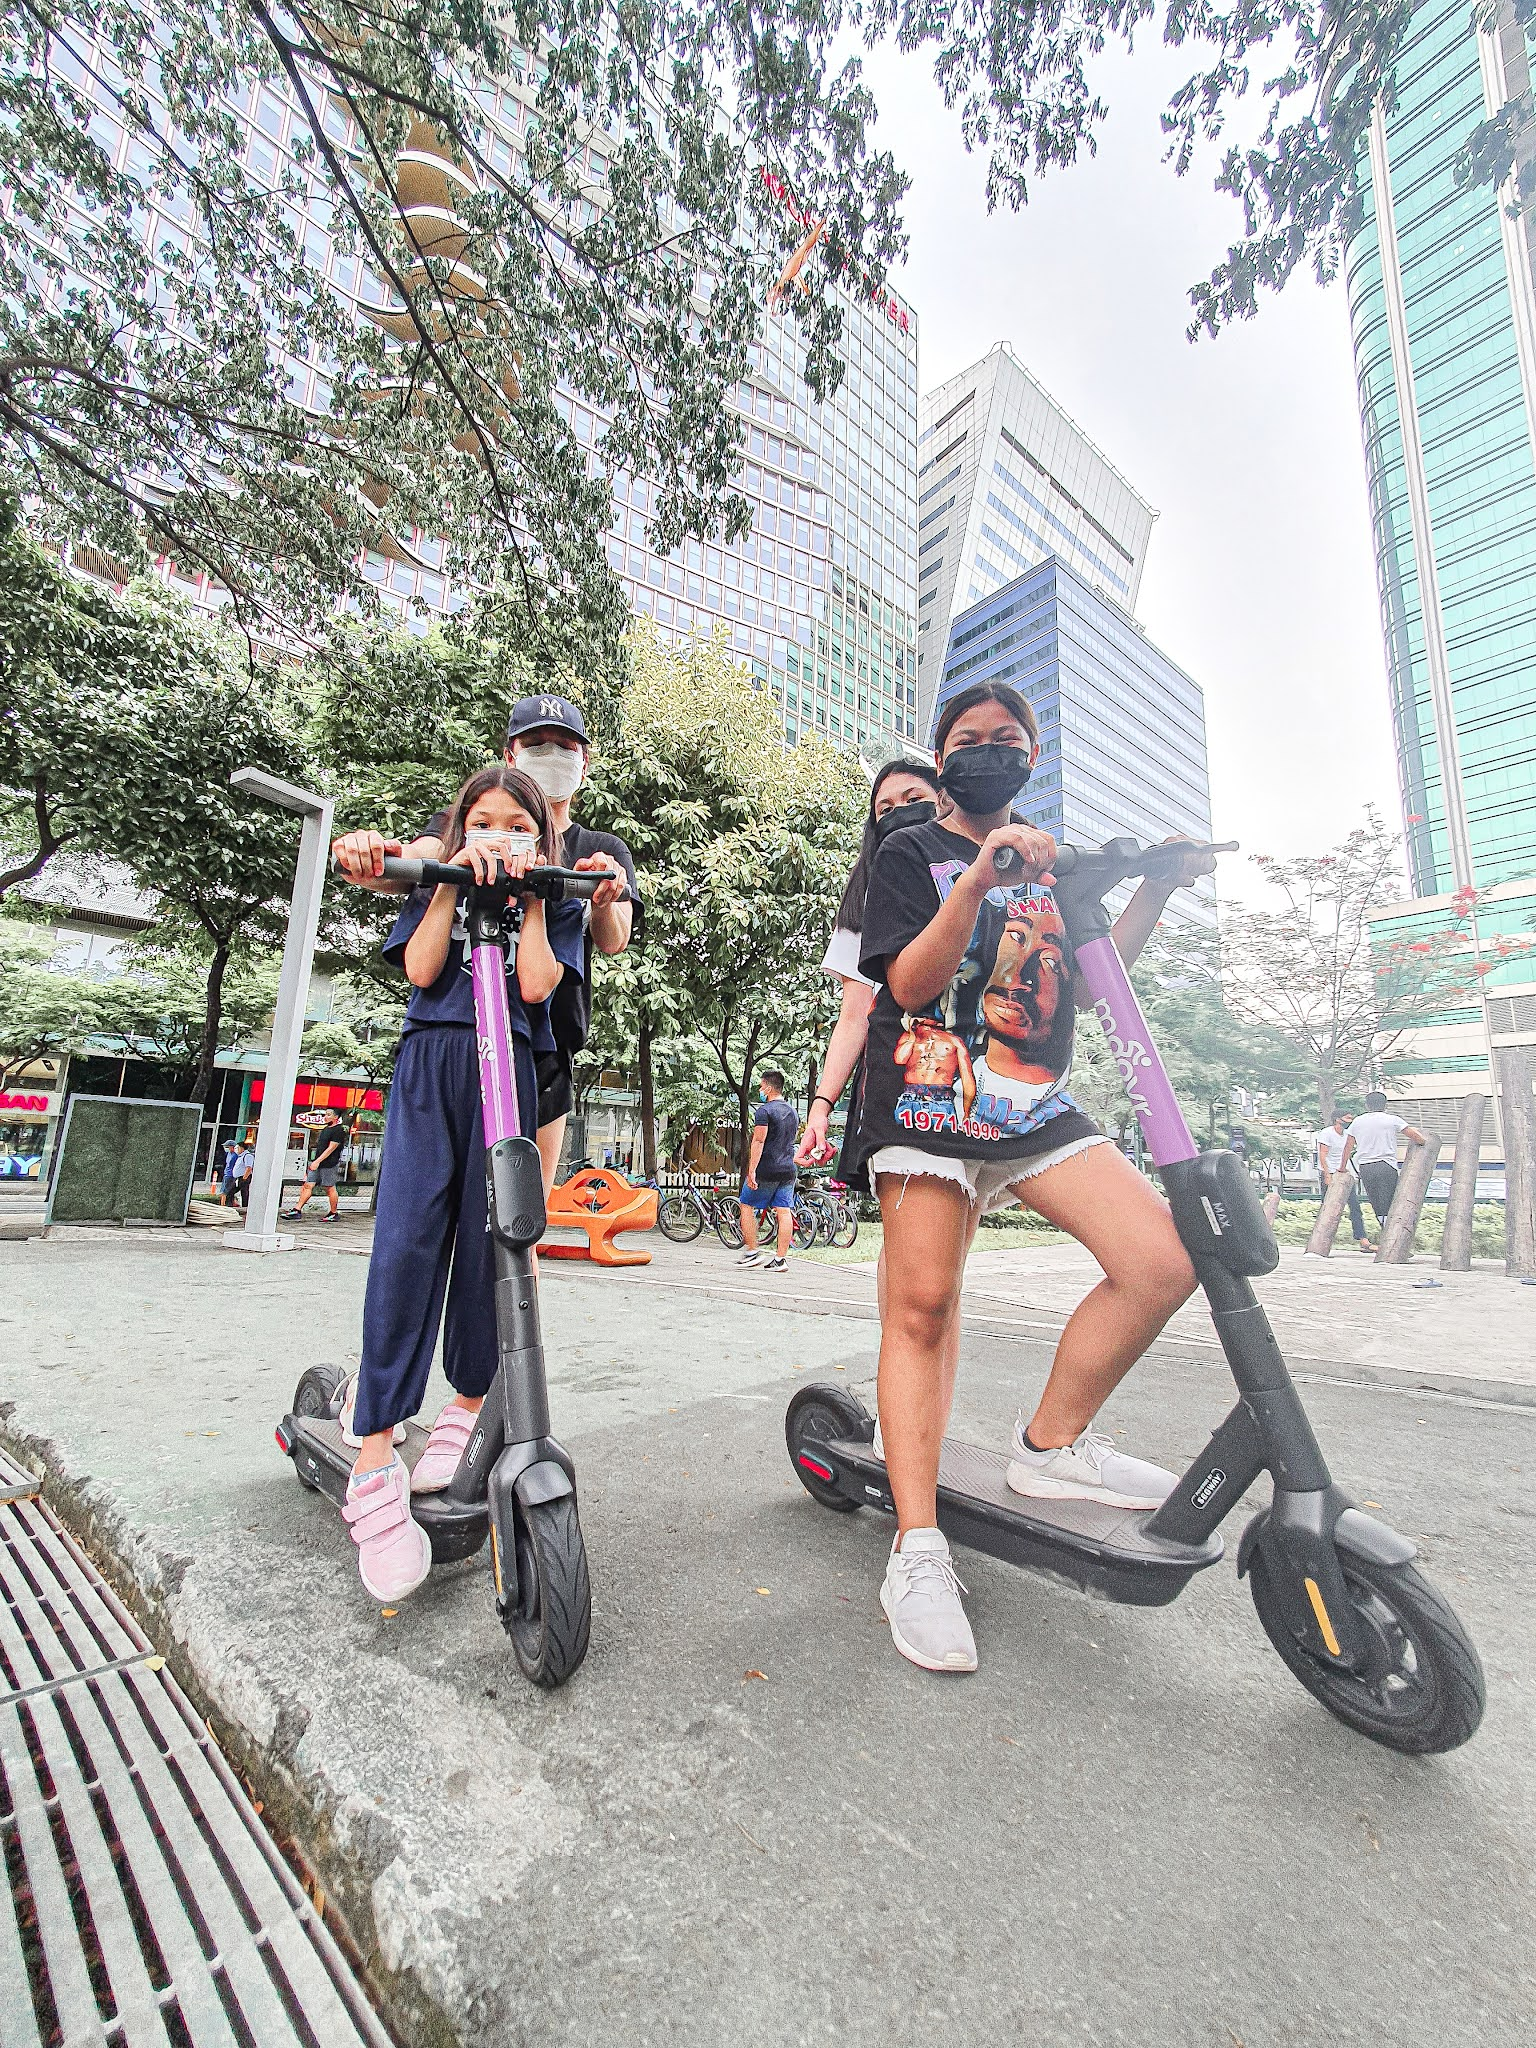 A day at the park in BGC with the kids., kids are allowed in BGC Park, where to bring kids this pandemic